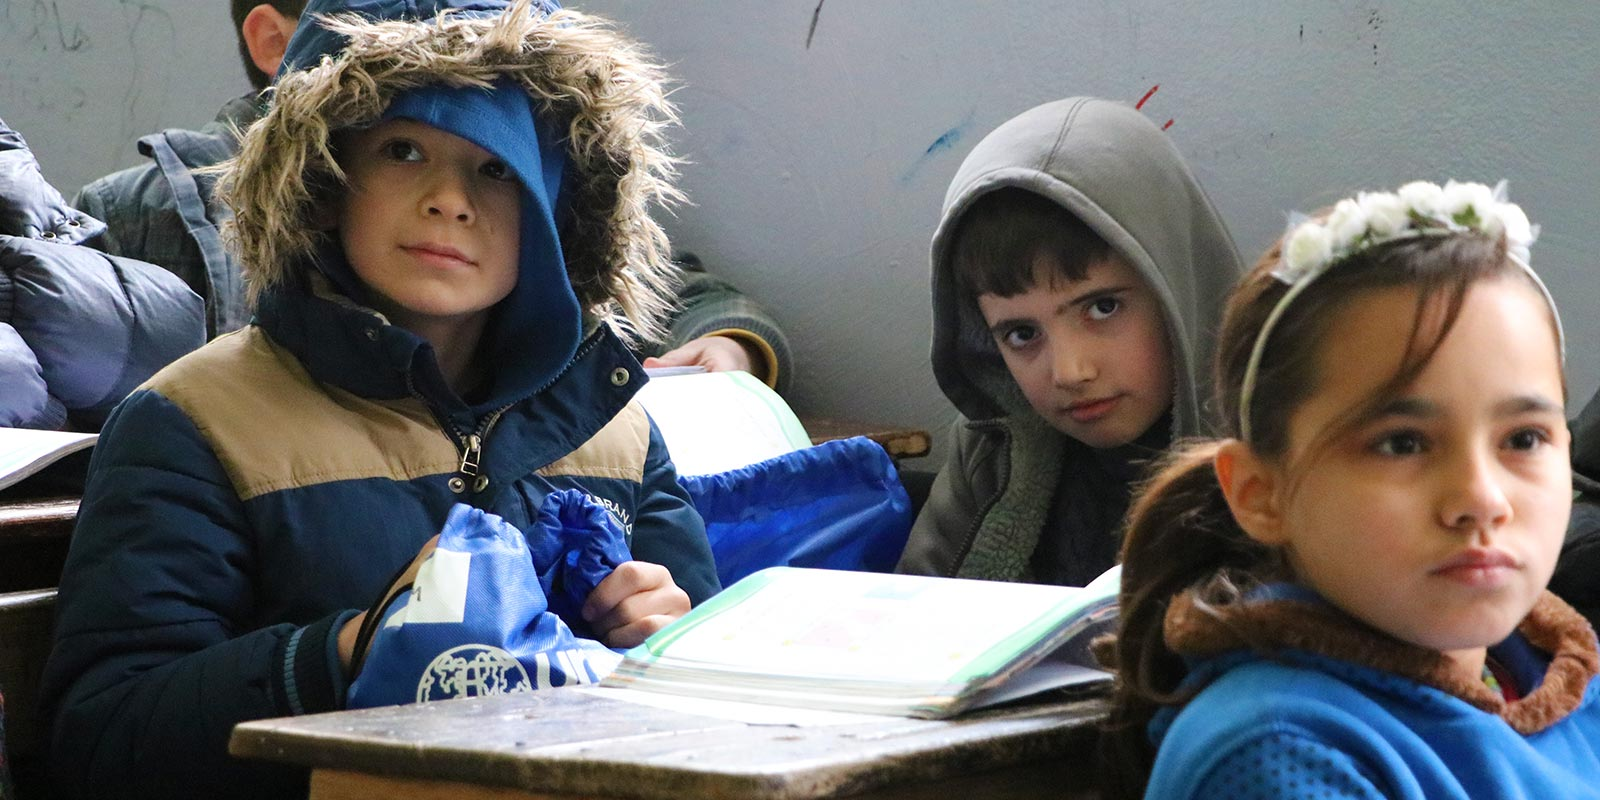 Syria Child in Class